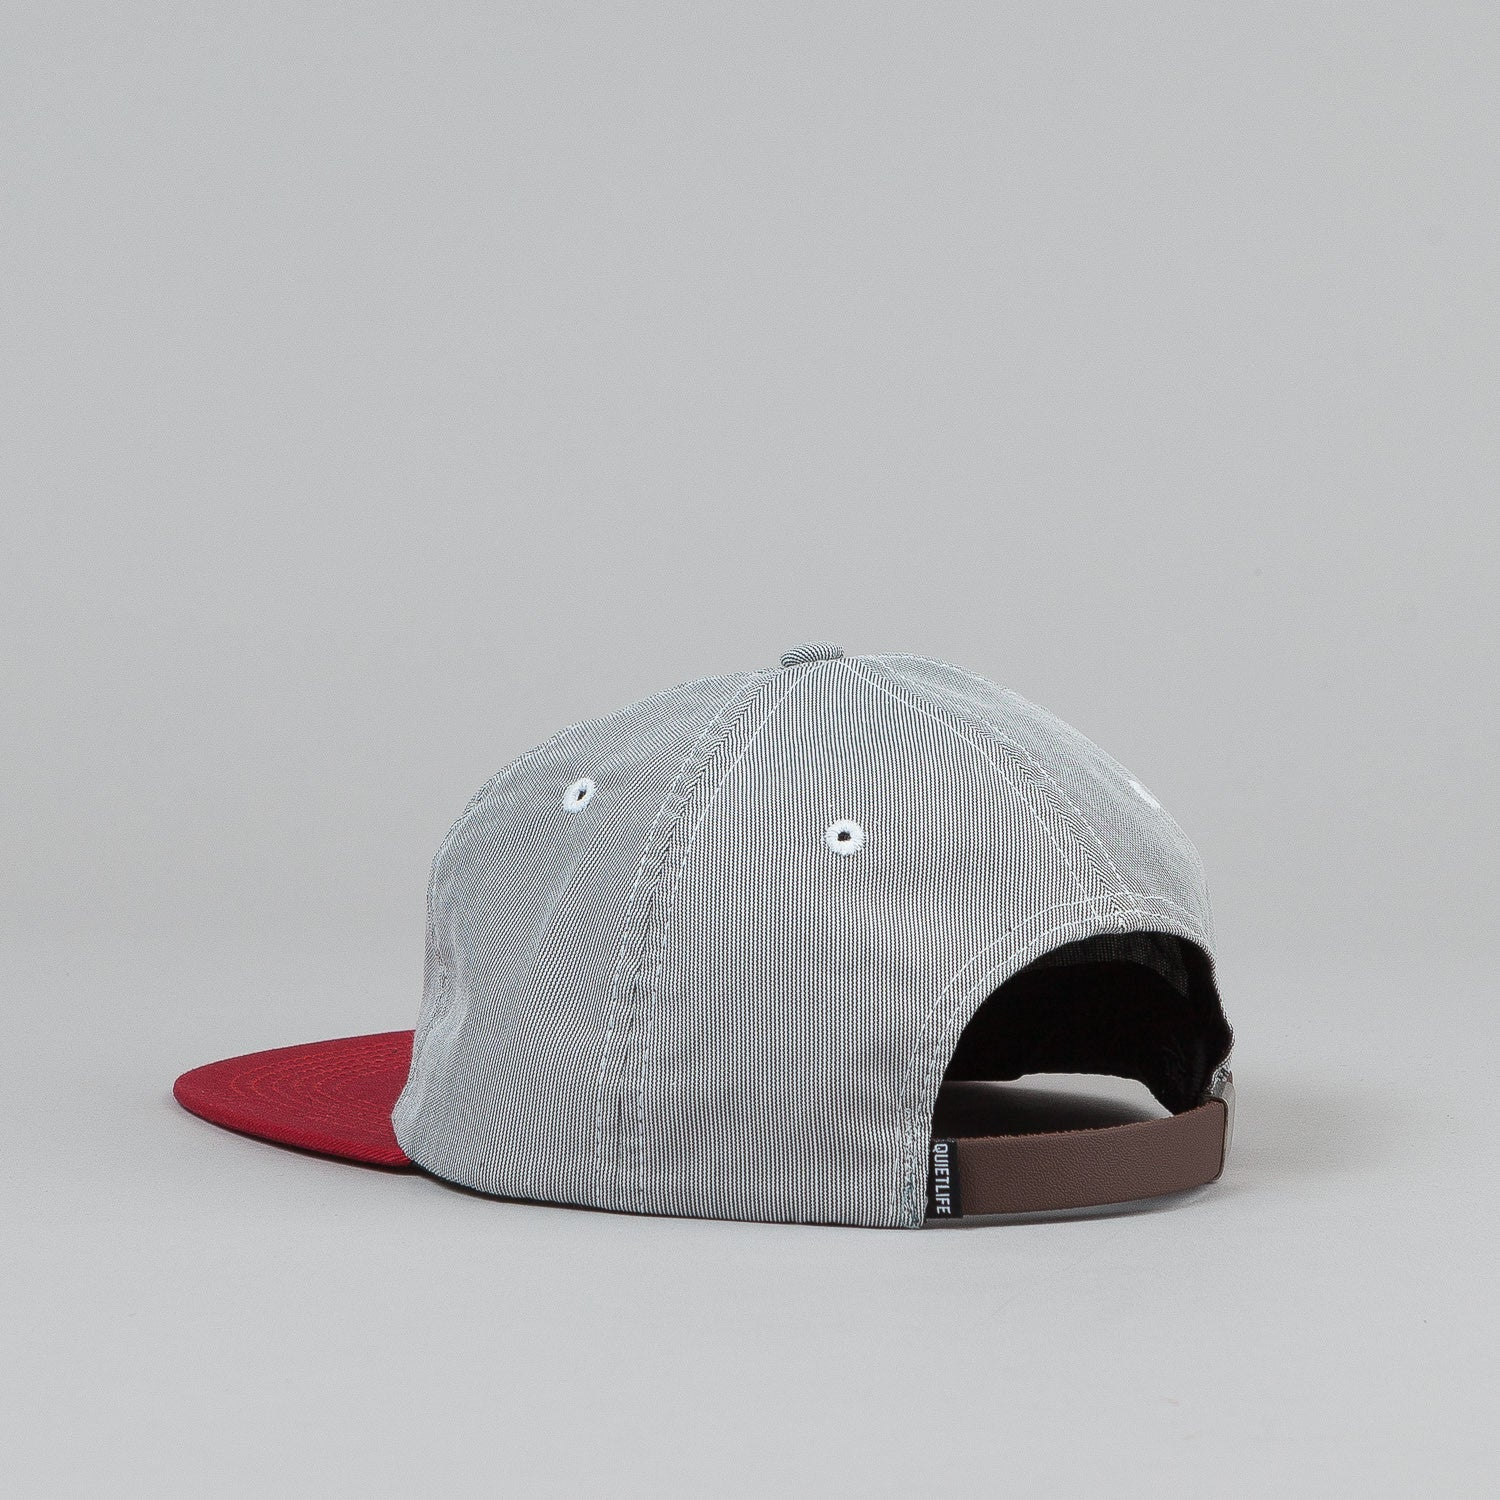 The Quiet Life Pincord Polo 6 Panel Cap - Black / Red